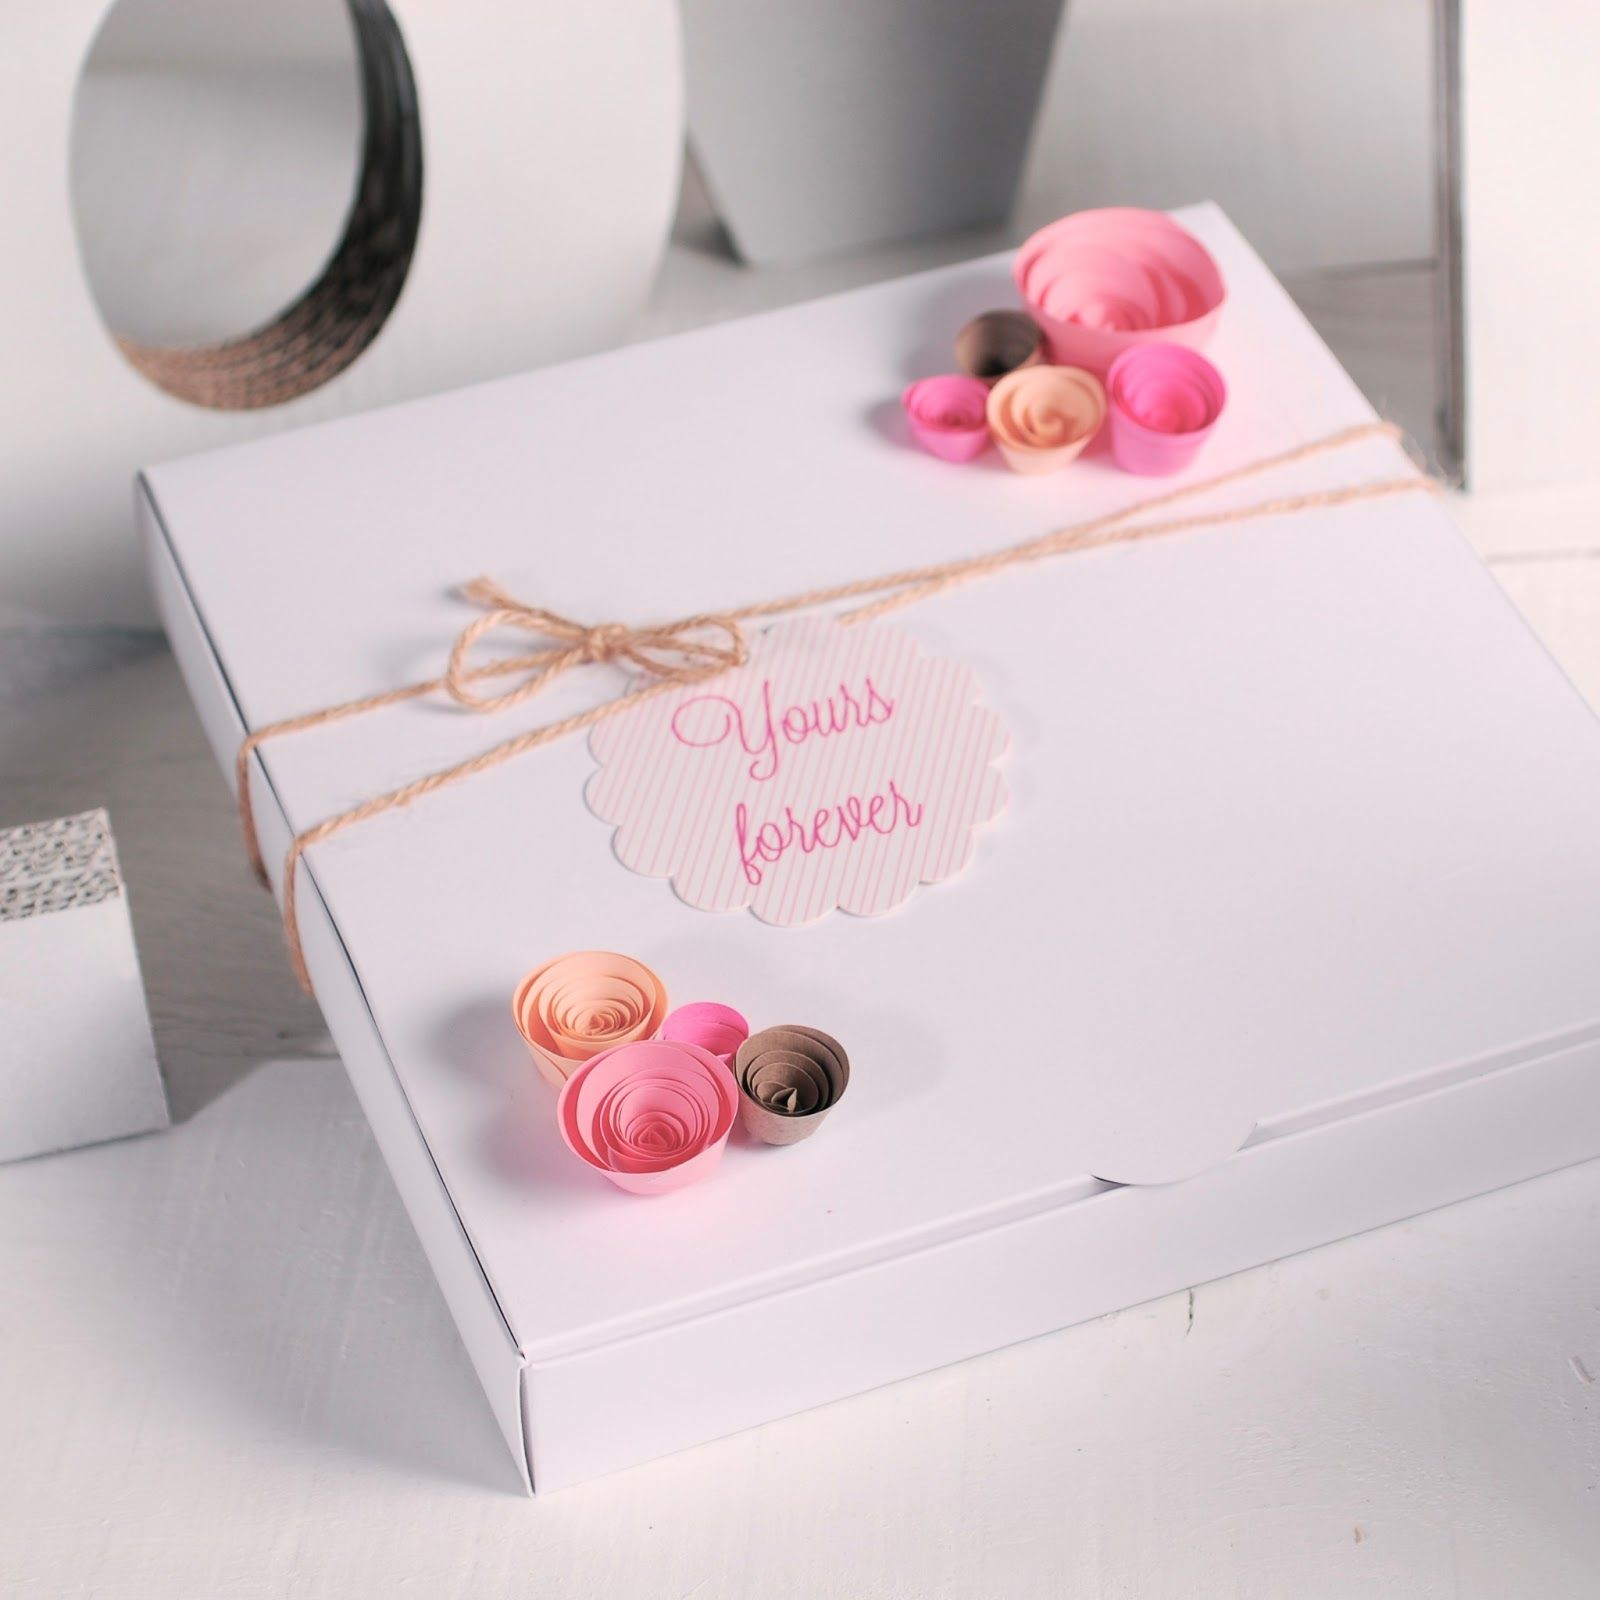 decorative gift wrapping ideas